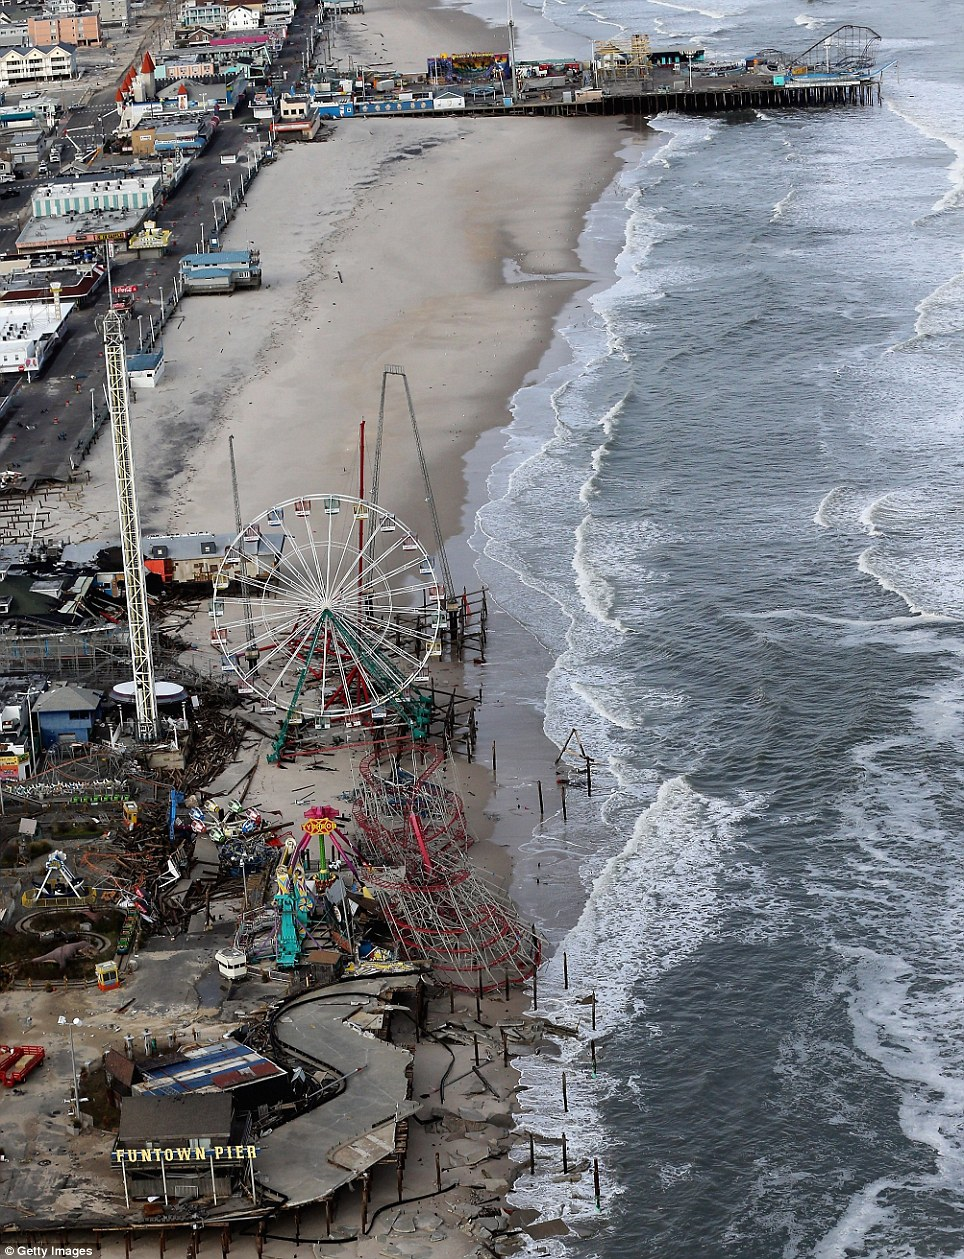 Tragic: At least 50 people were reportedly killed in the U.S. by Sandy with New Jersey suffering massive damage and power outages. This picture shows the length of the popular beach at Seaside Heights